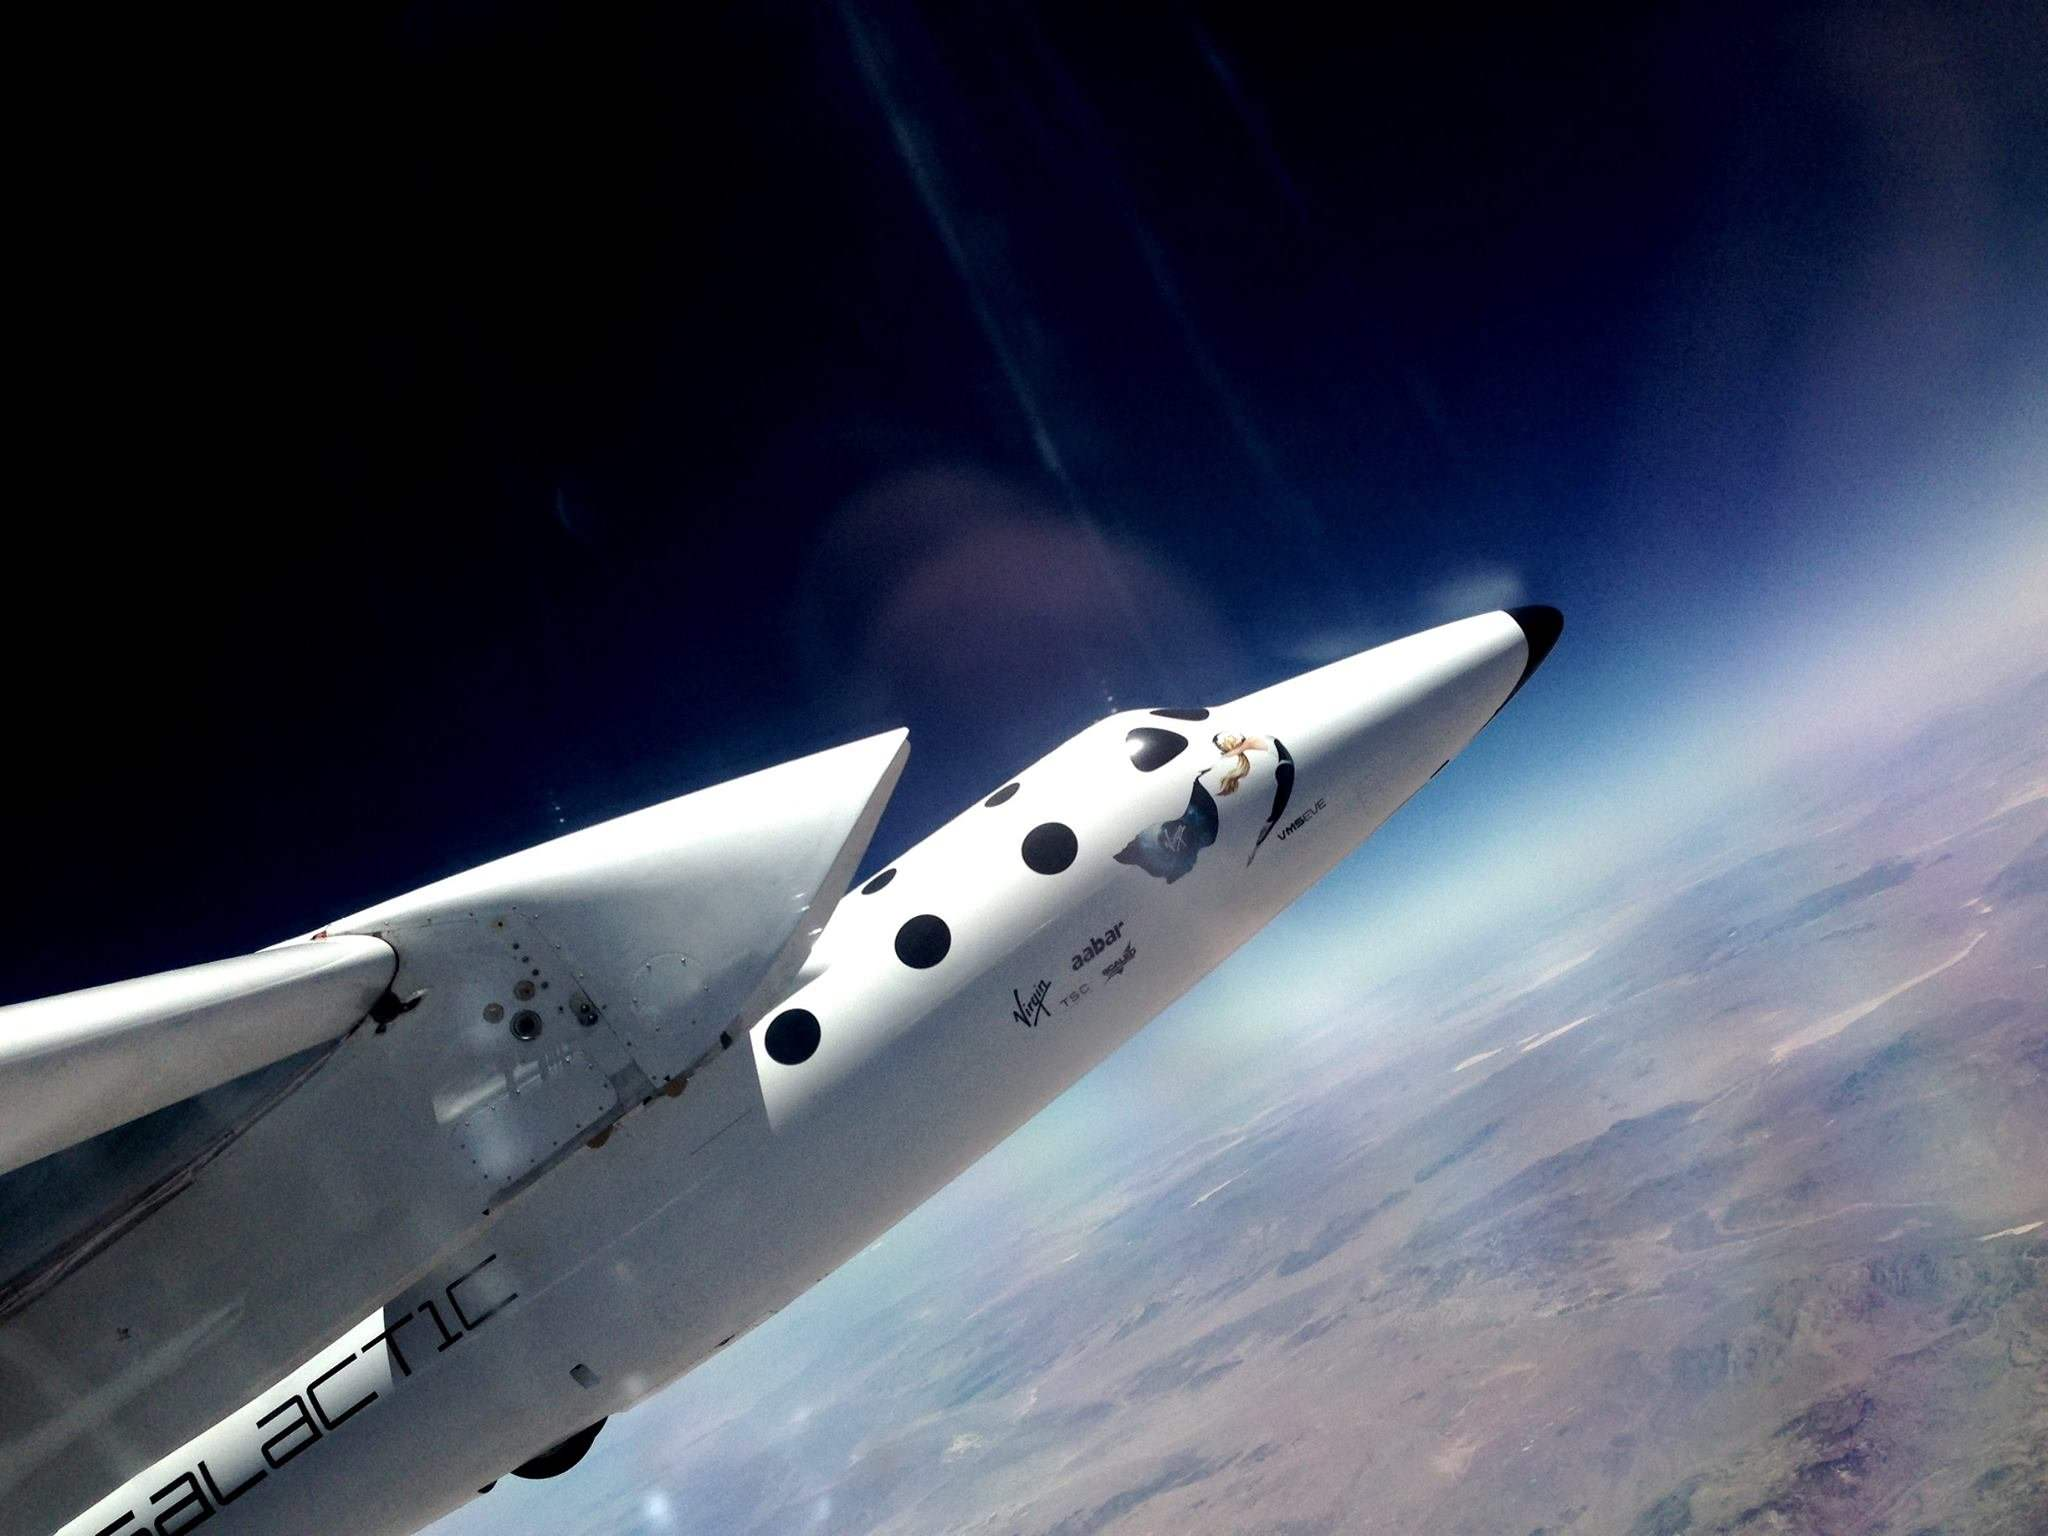 WhiteKnightTwo during a test flight in 2014, the 150th it has taken so far. Credit: Virgin Galactic